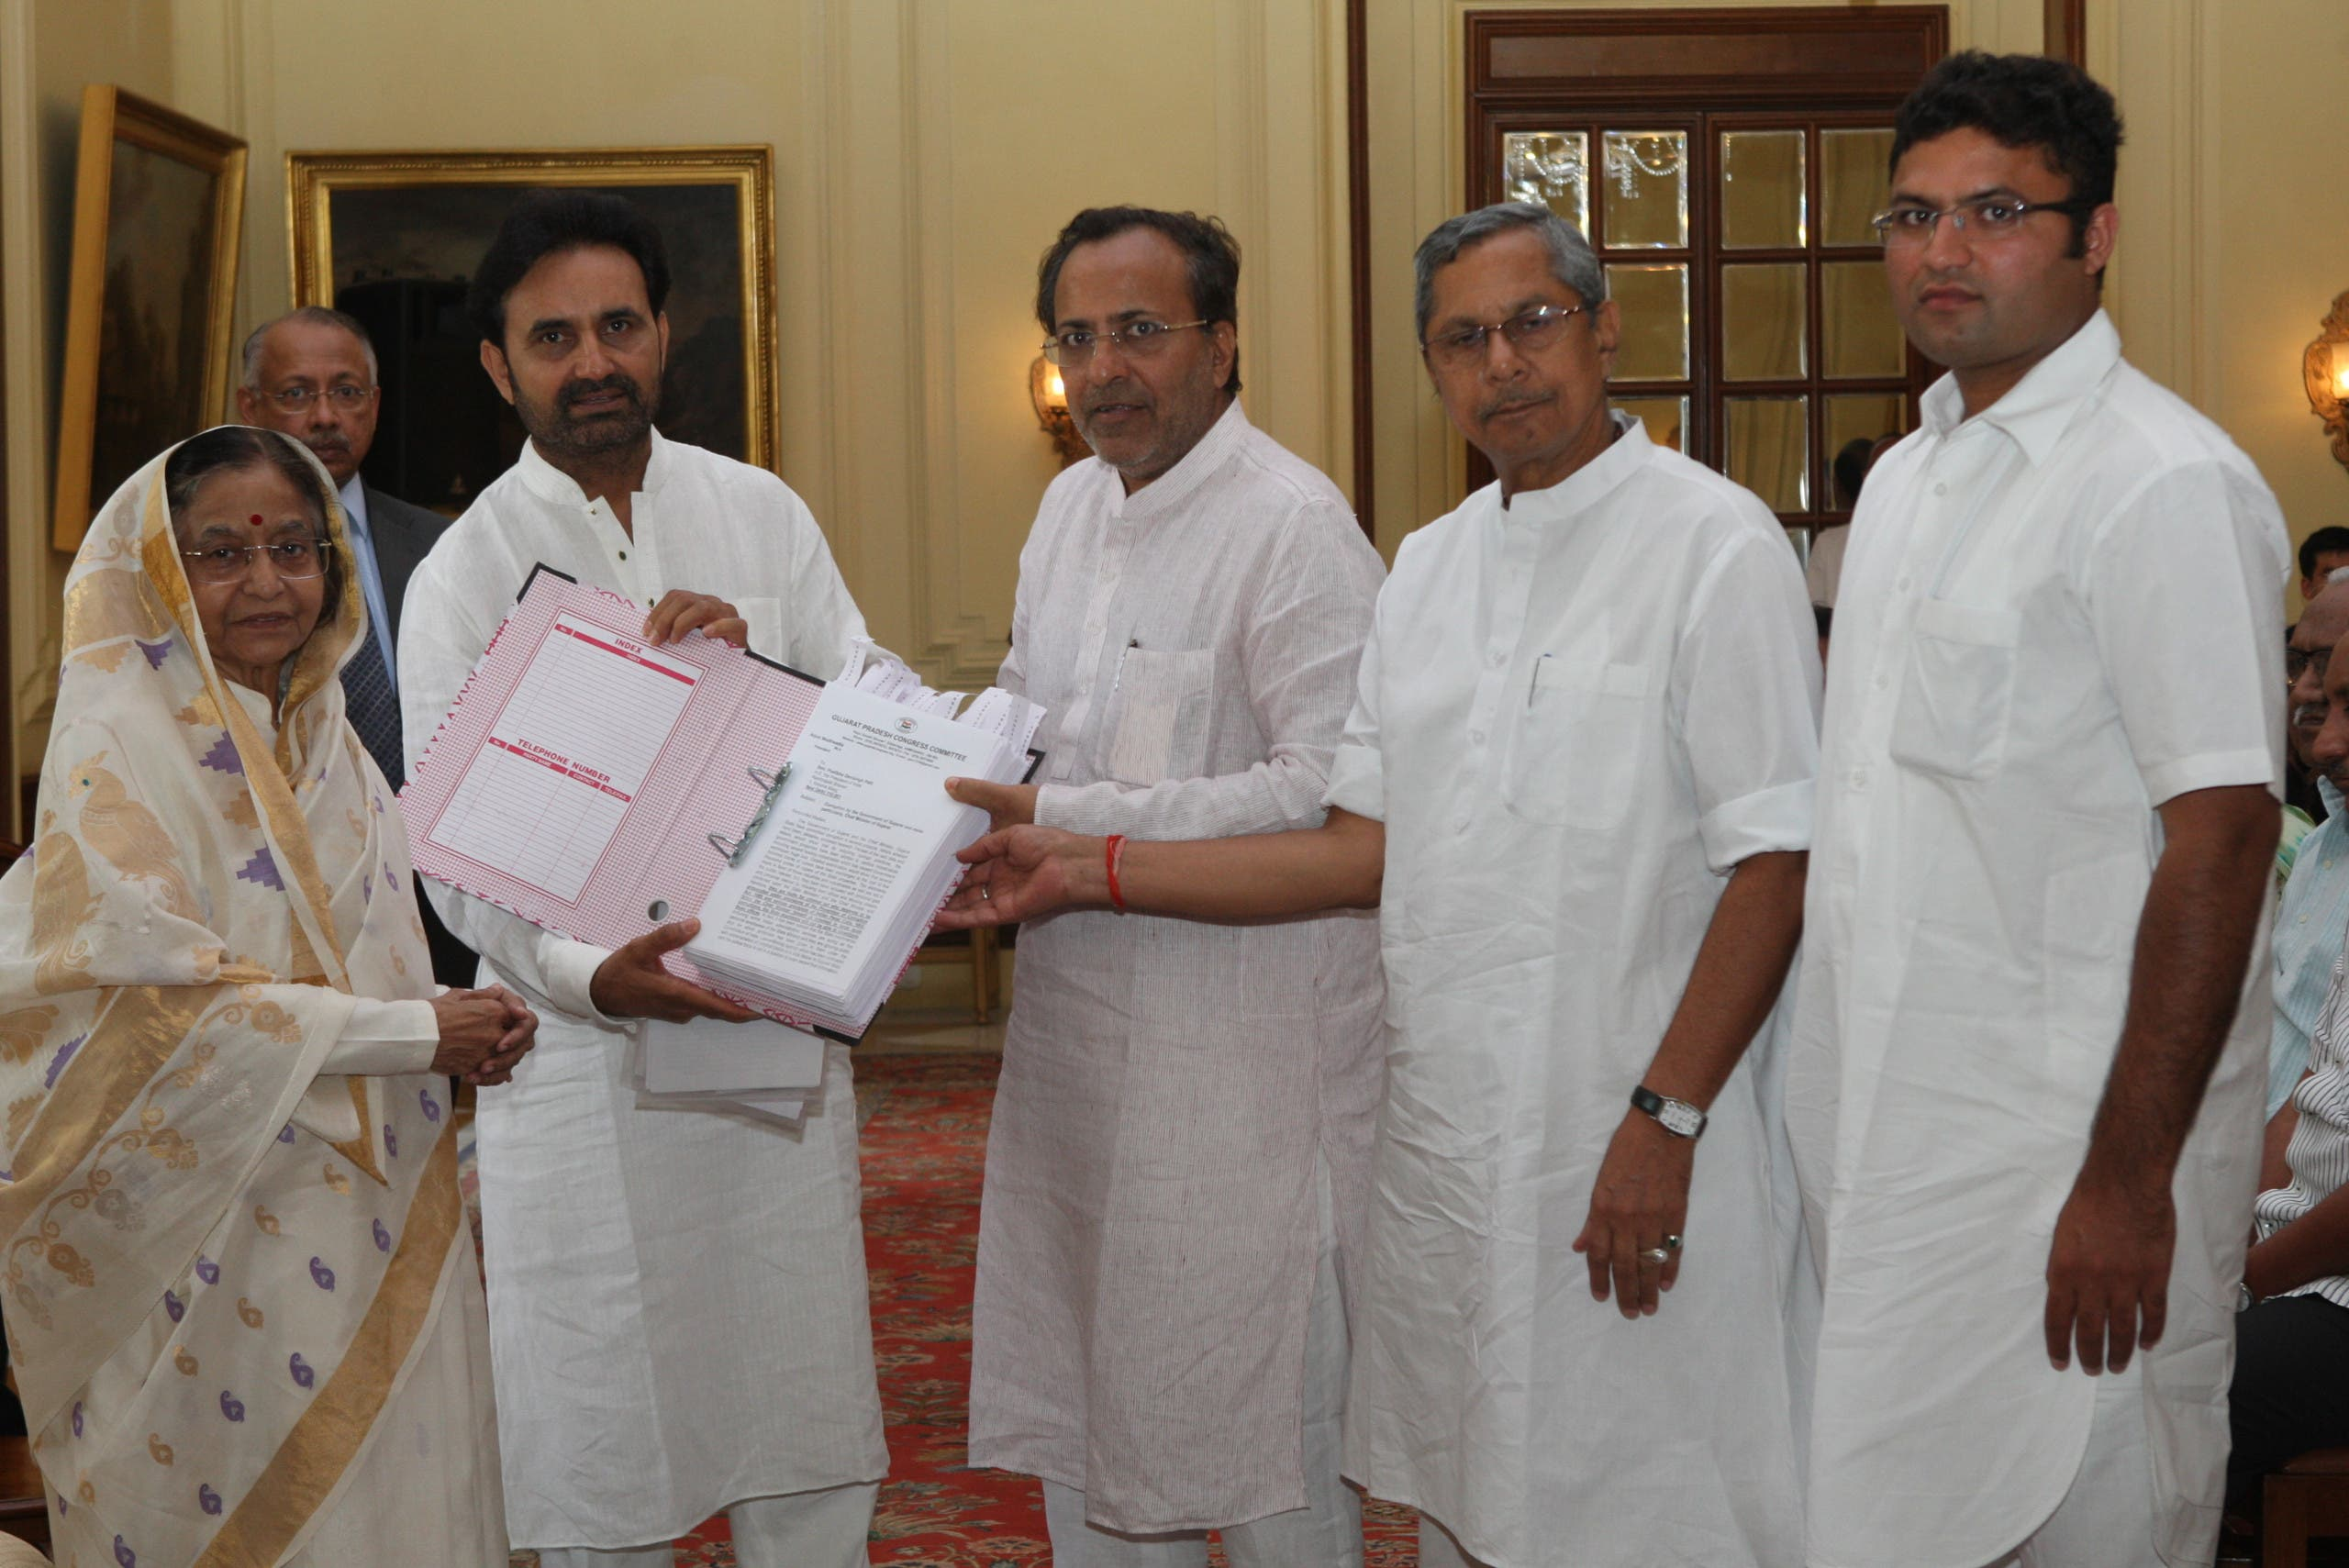 Congress leaders like Arjun Modhwadia (centre, bespectacled) have made several anti-EVM representations to the authorities. (Supplied)